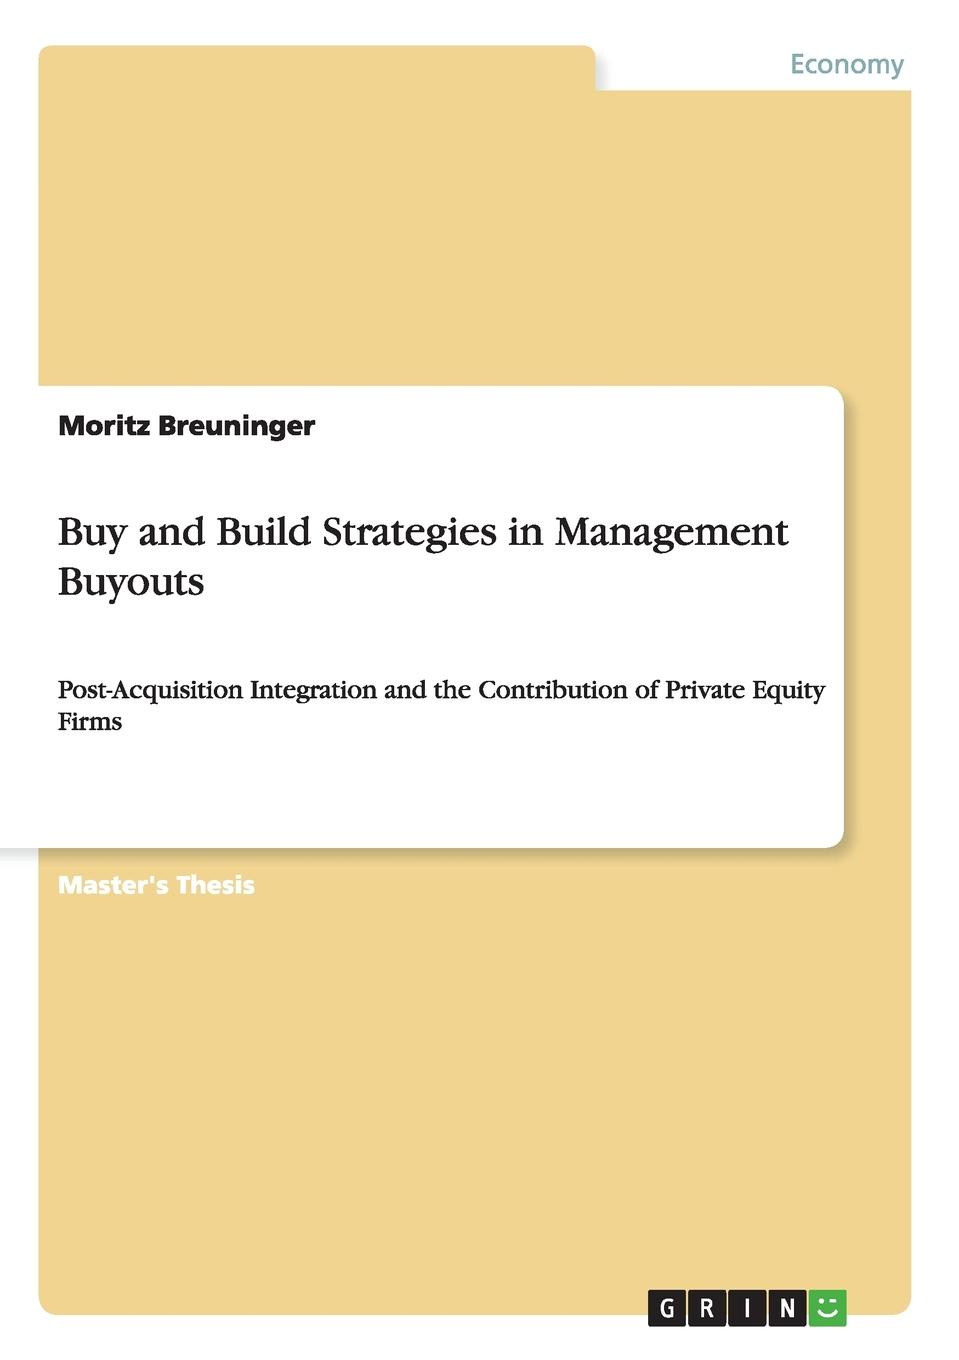 Moritz Breuninger Buy and Build Strategies in Management Buyouts 70m hdmi 2 0 left angled 90 degree male to female active repeater extender booster coupler adapter 1080p hdtv